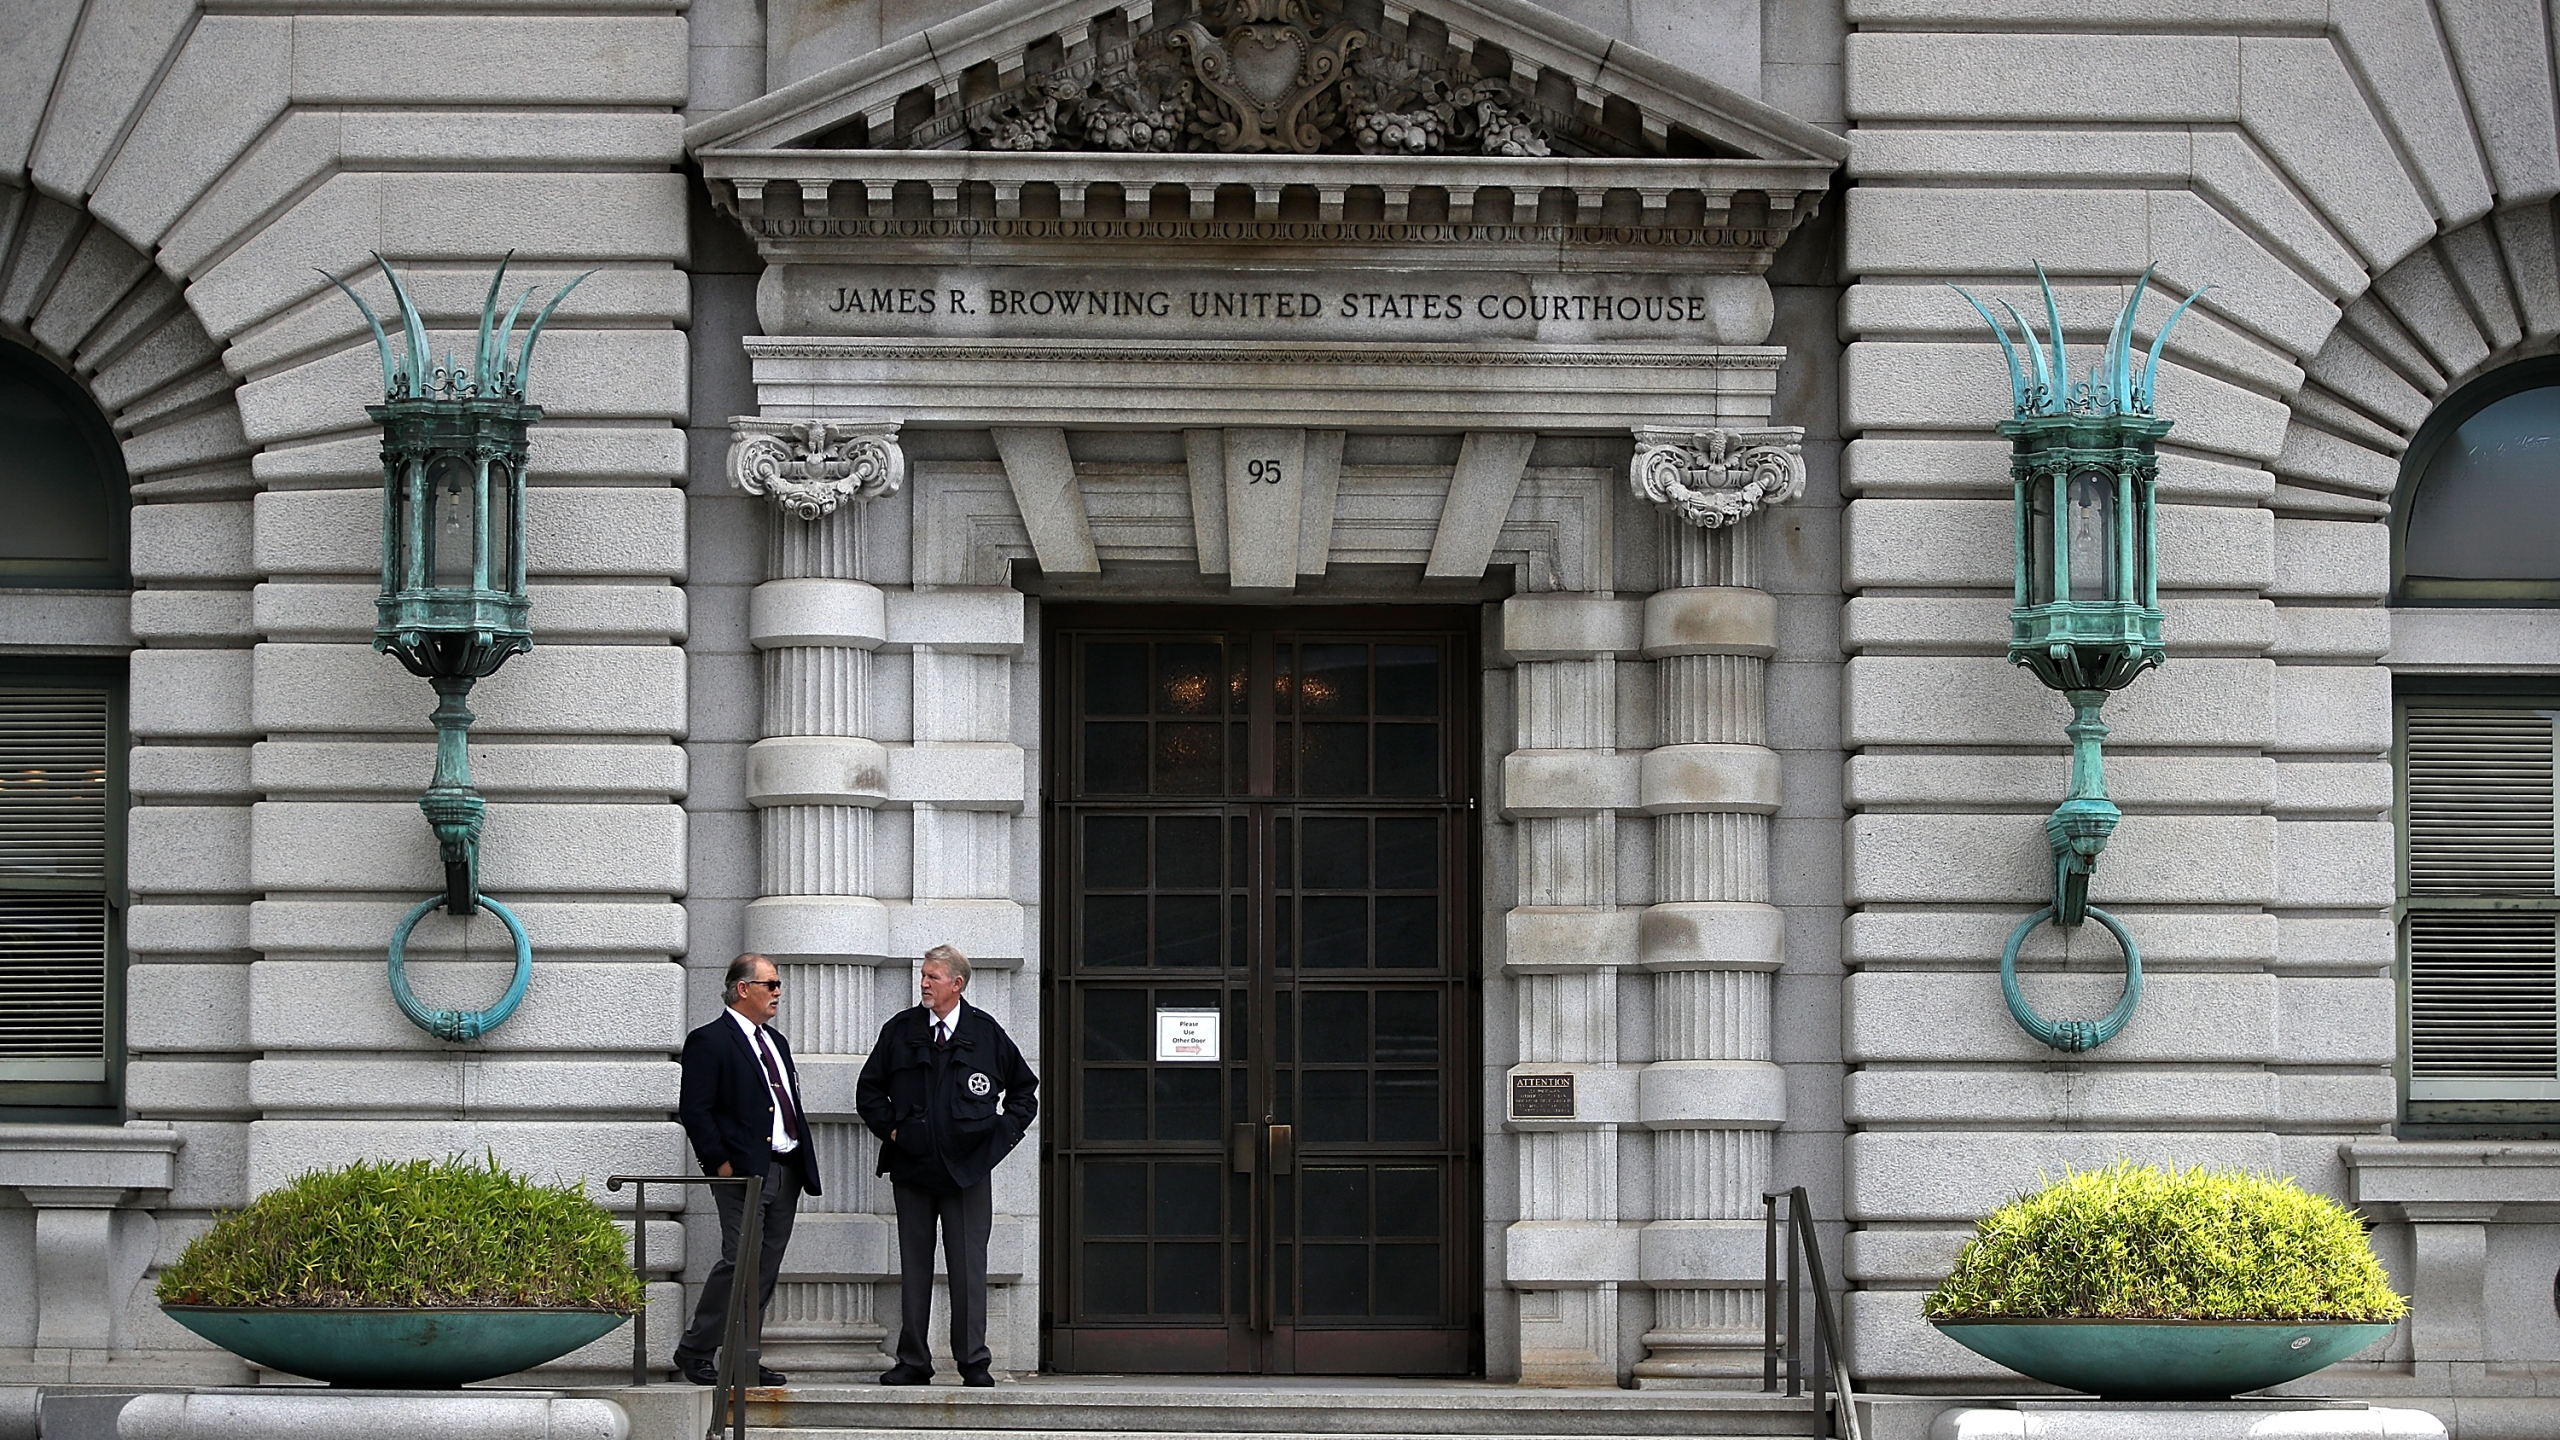 Security guards stand in front of the 9th U.S. Circuit Court of Appeals on June 12, 2017, in San Francisco. (Justin Sullivan/Getty Images)